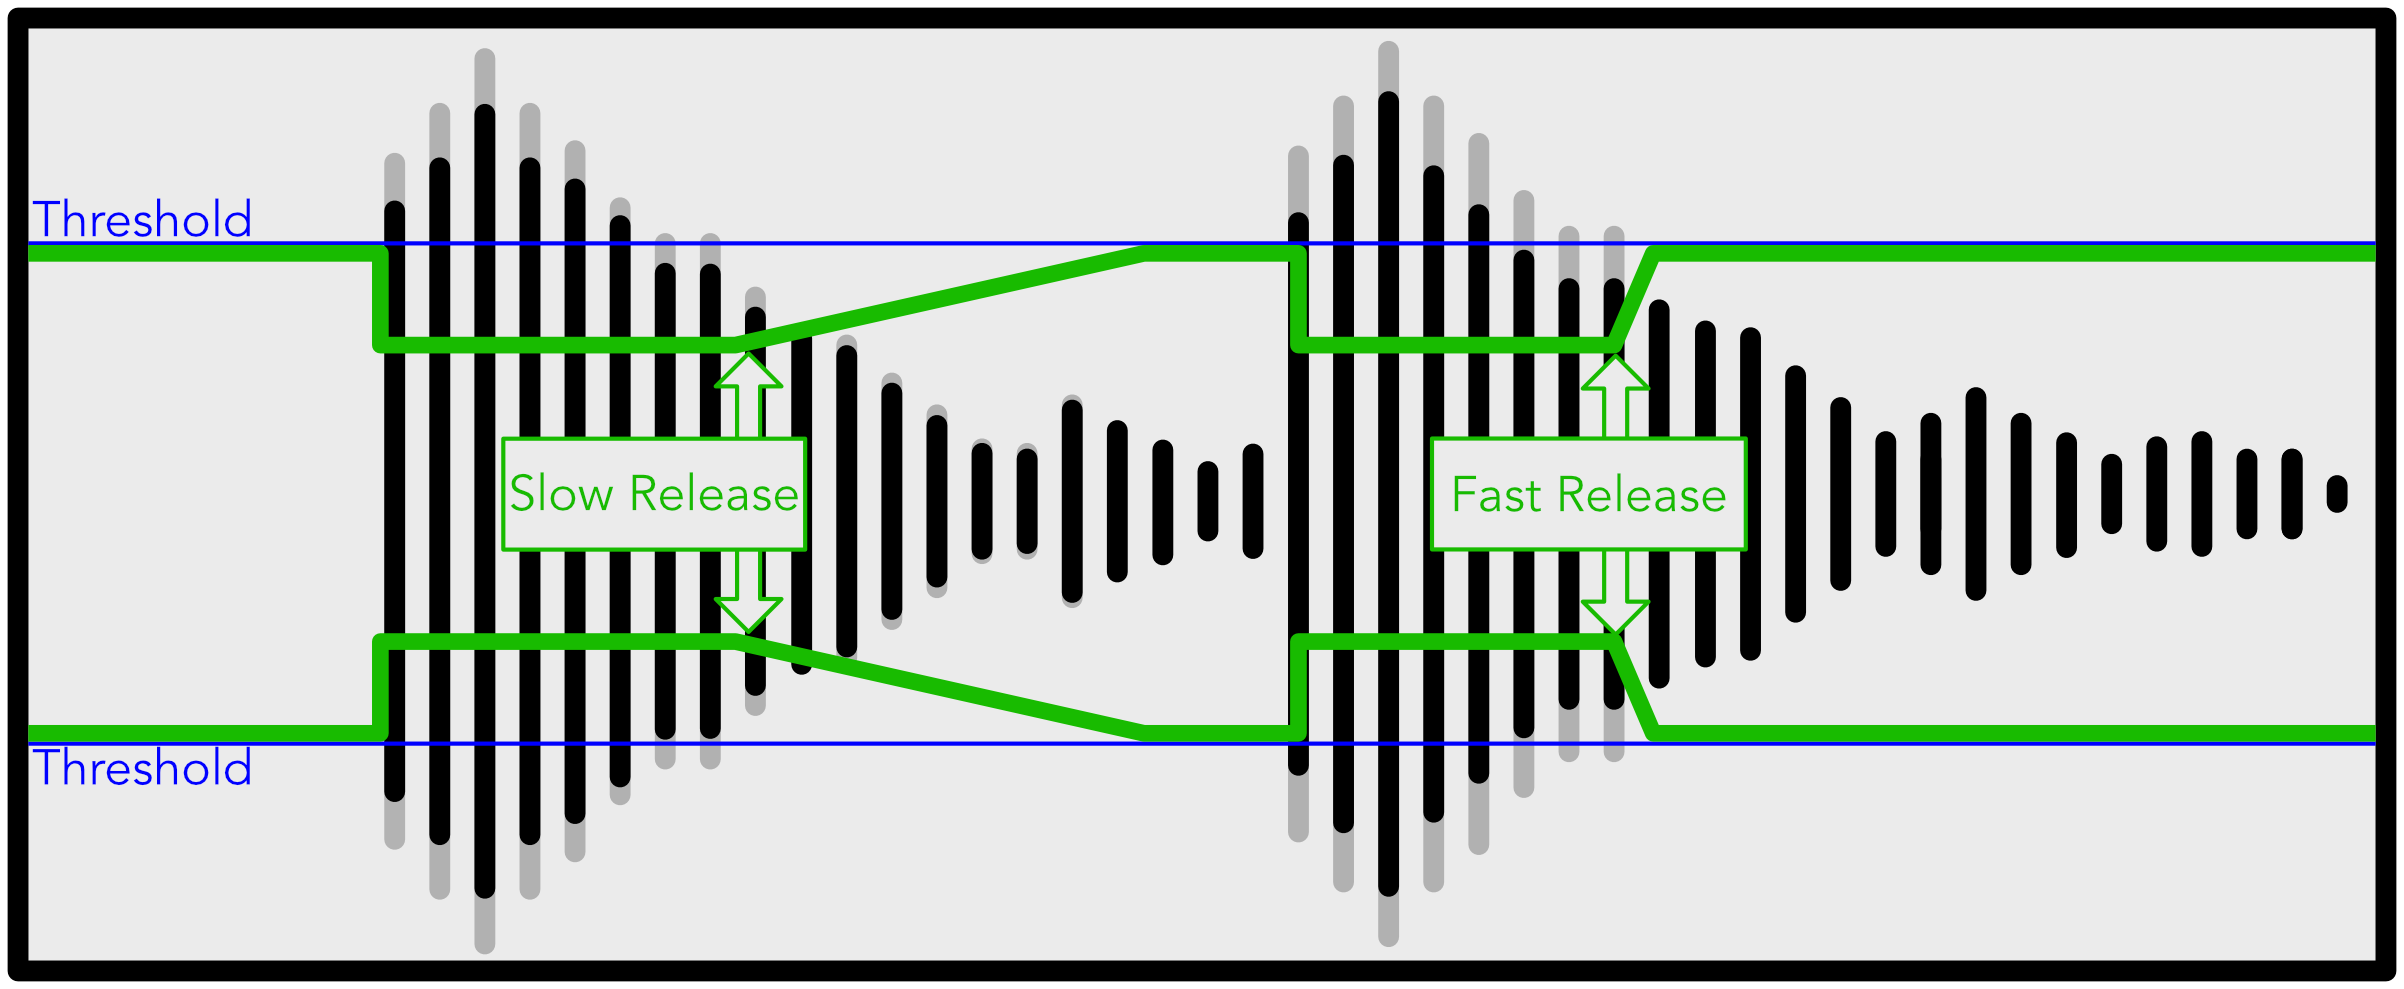 What does release mean in a compressor?